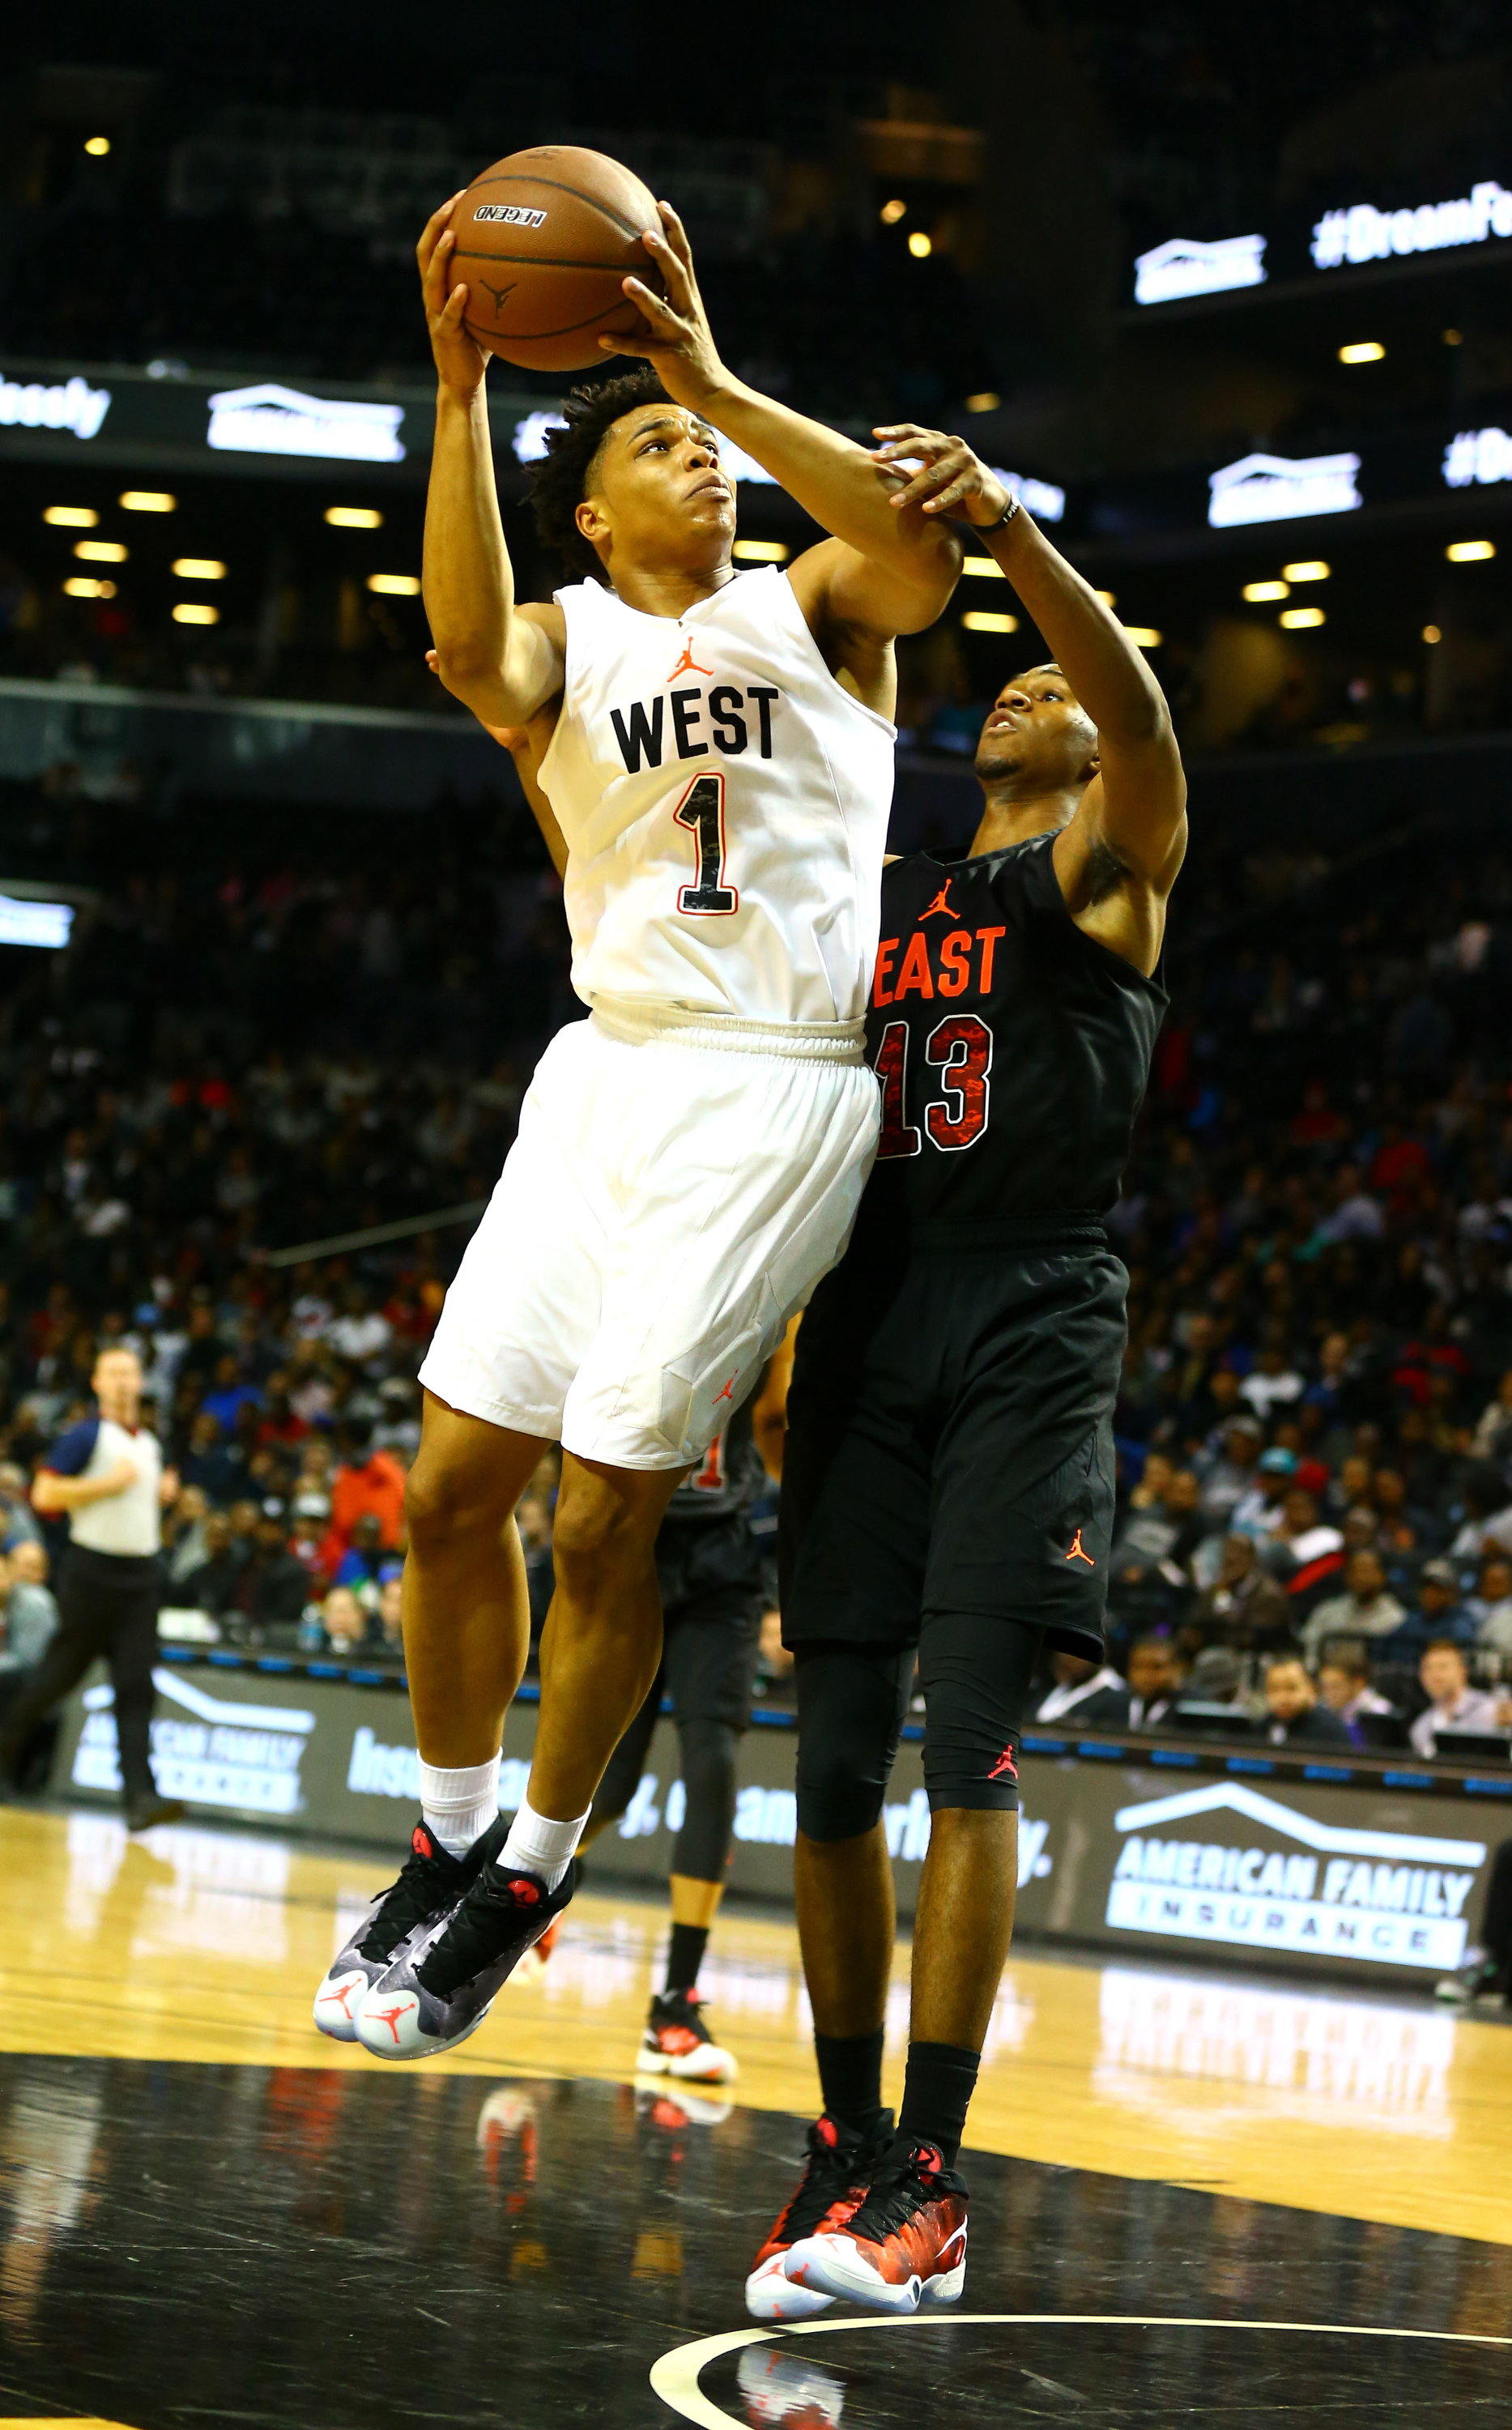 4/15/2016 8:00PM -- New York, NY, U.S.A -- West Team forward Miles Bridges (1) goes up for a shot while being defended by West Team forward Omari Spellman (13) during the second half of the Jordan Brand Classic Boys National Game at Barclay's Center.The East defeated the West 131-117. Photo by Andy Marlin-USA TODAY Sports Images, Gannett ORG XMIT: US 134691 Jordan hoops 4/15/2016 [Via MerlinFTP Drop]